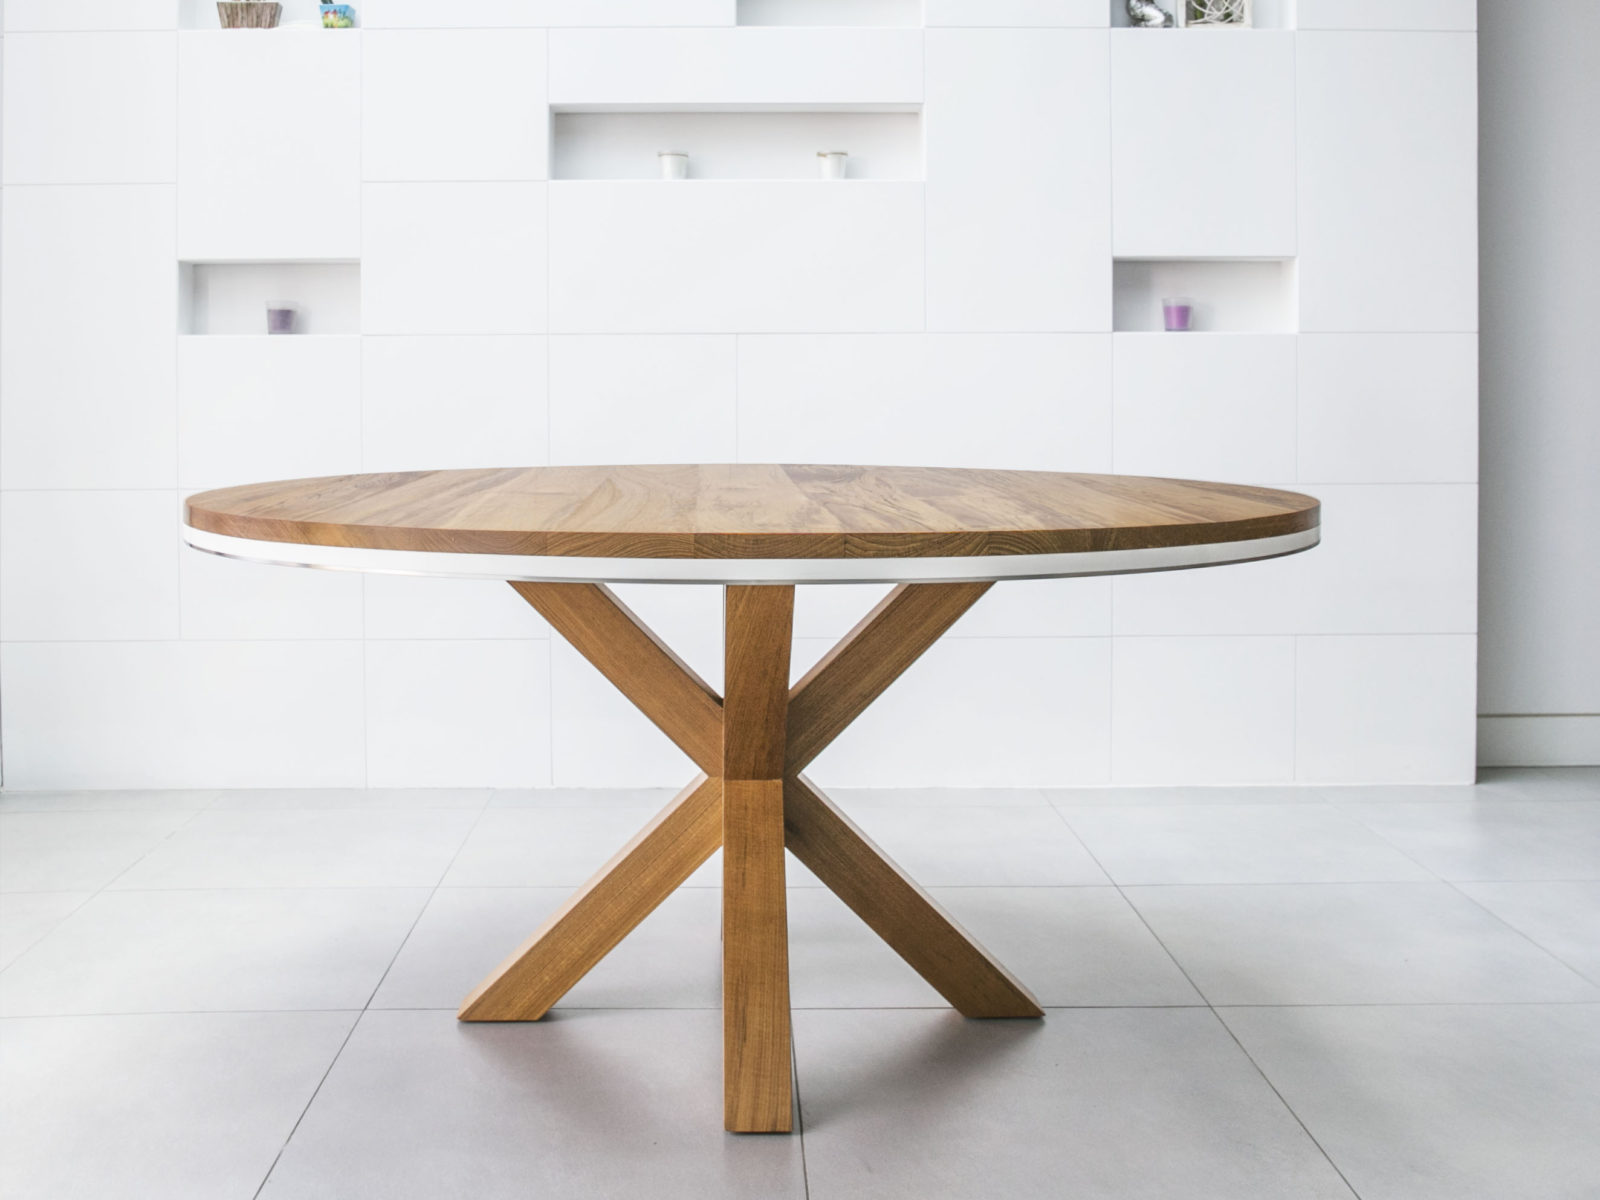 Round teak dining table with X solid legs